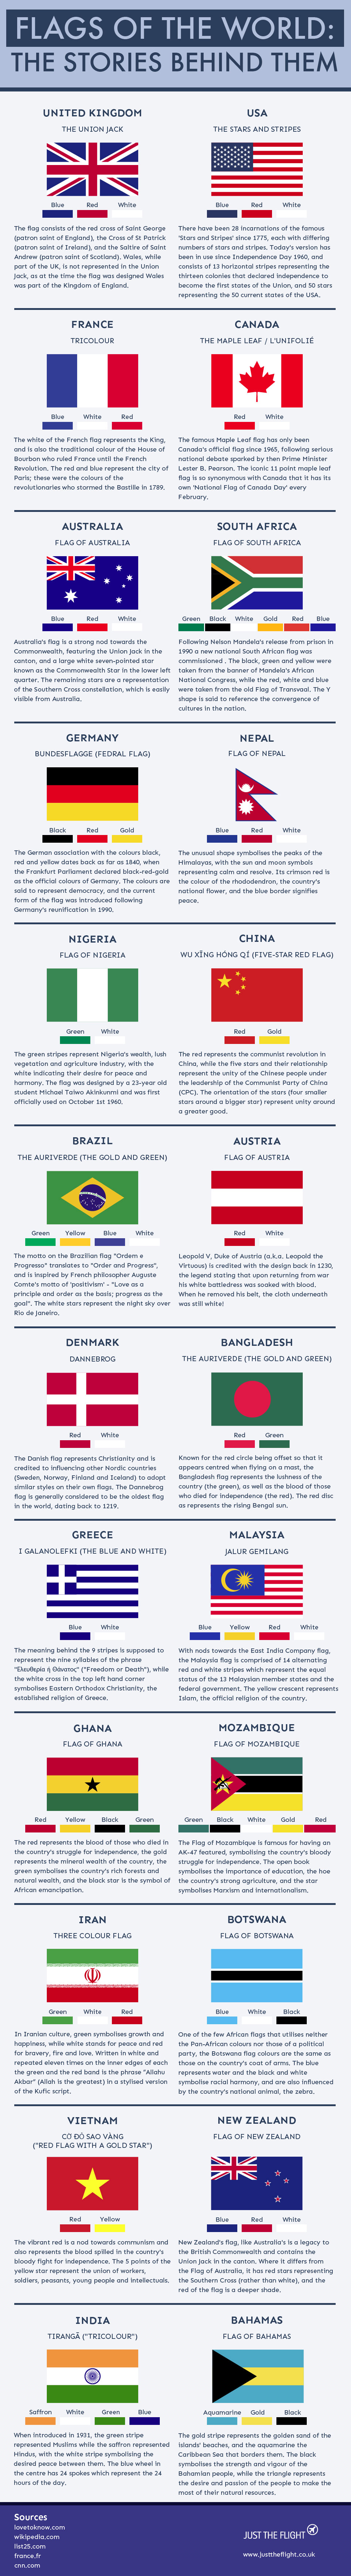 flags of the world infographic